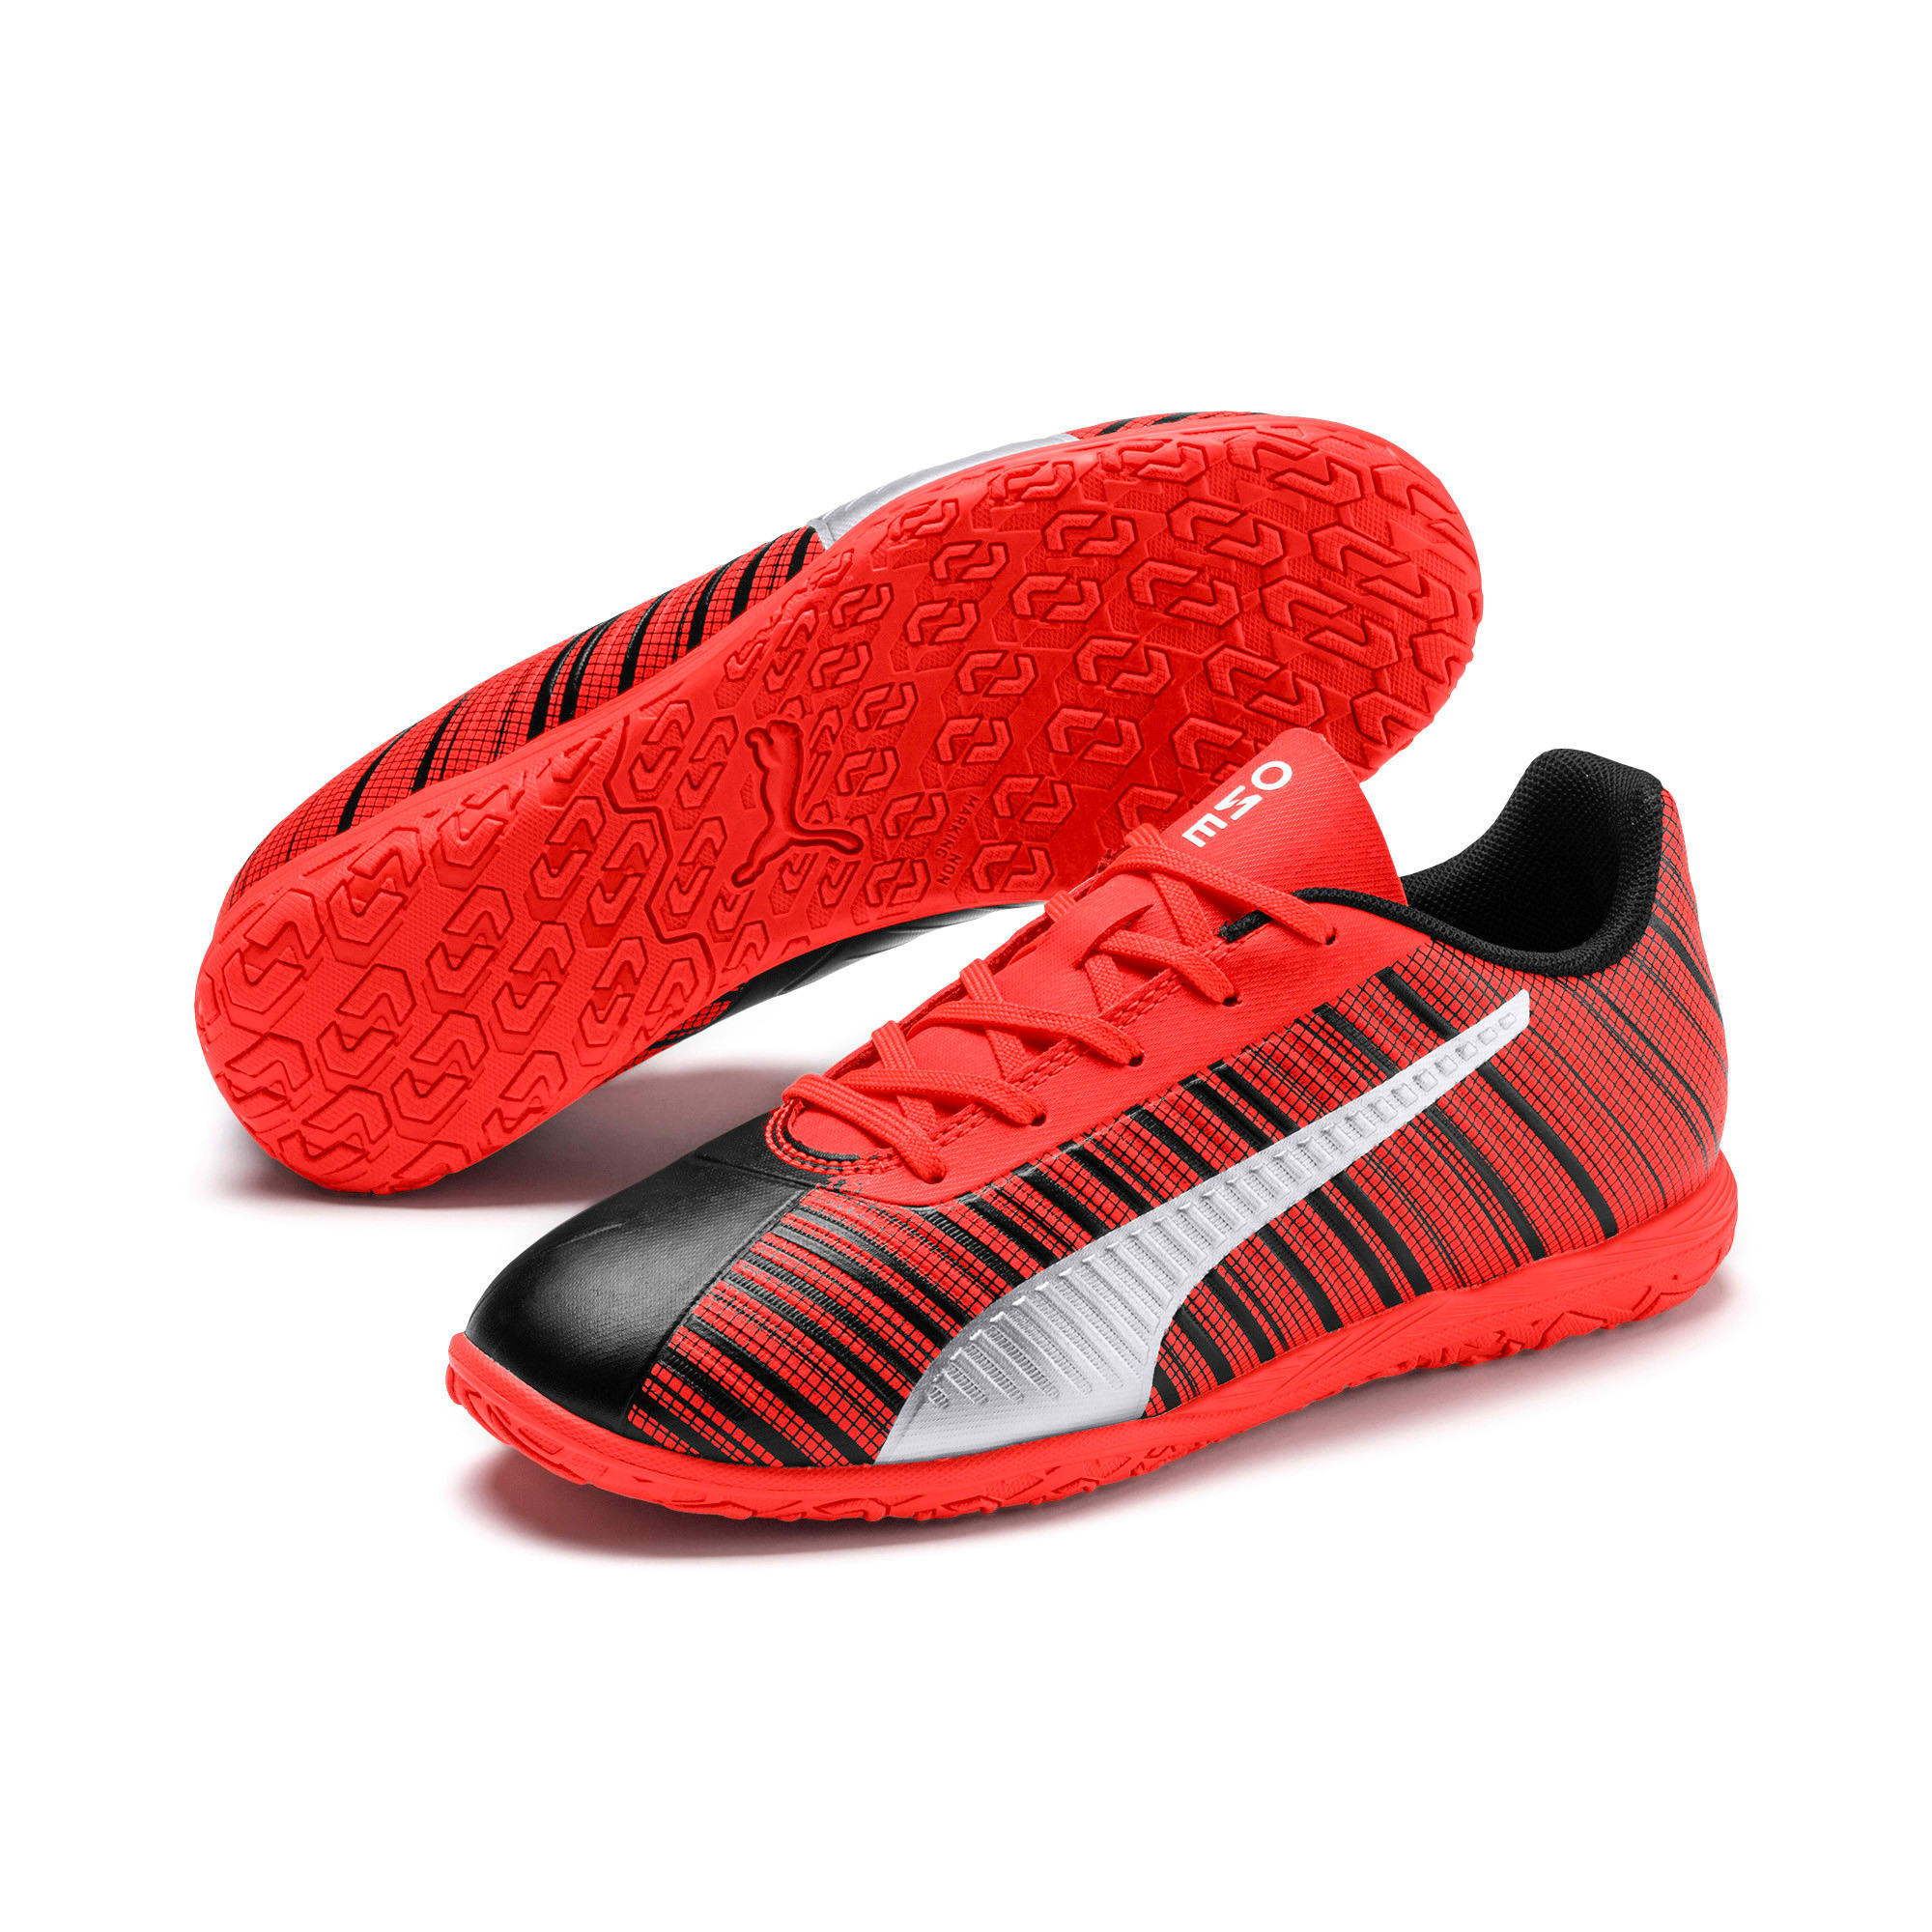 Thumbnail 2 of PUMA ONE 5.4 IT Soccer Shoes JR, Black-Nrgy Red-Aged Silver, medium